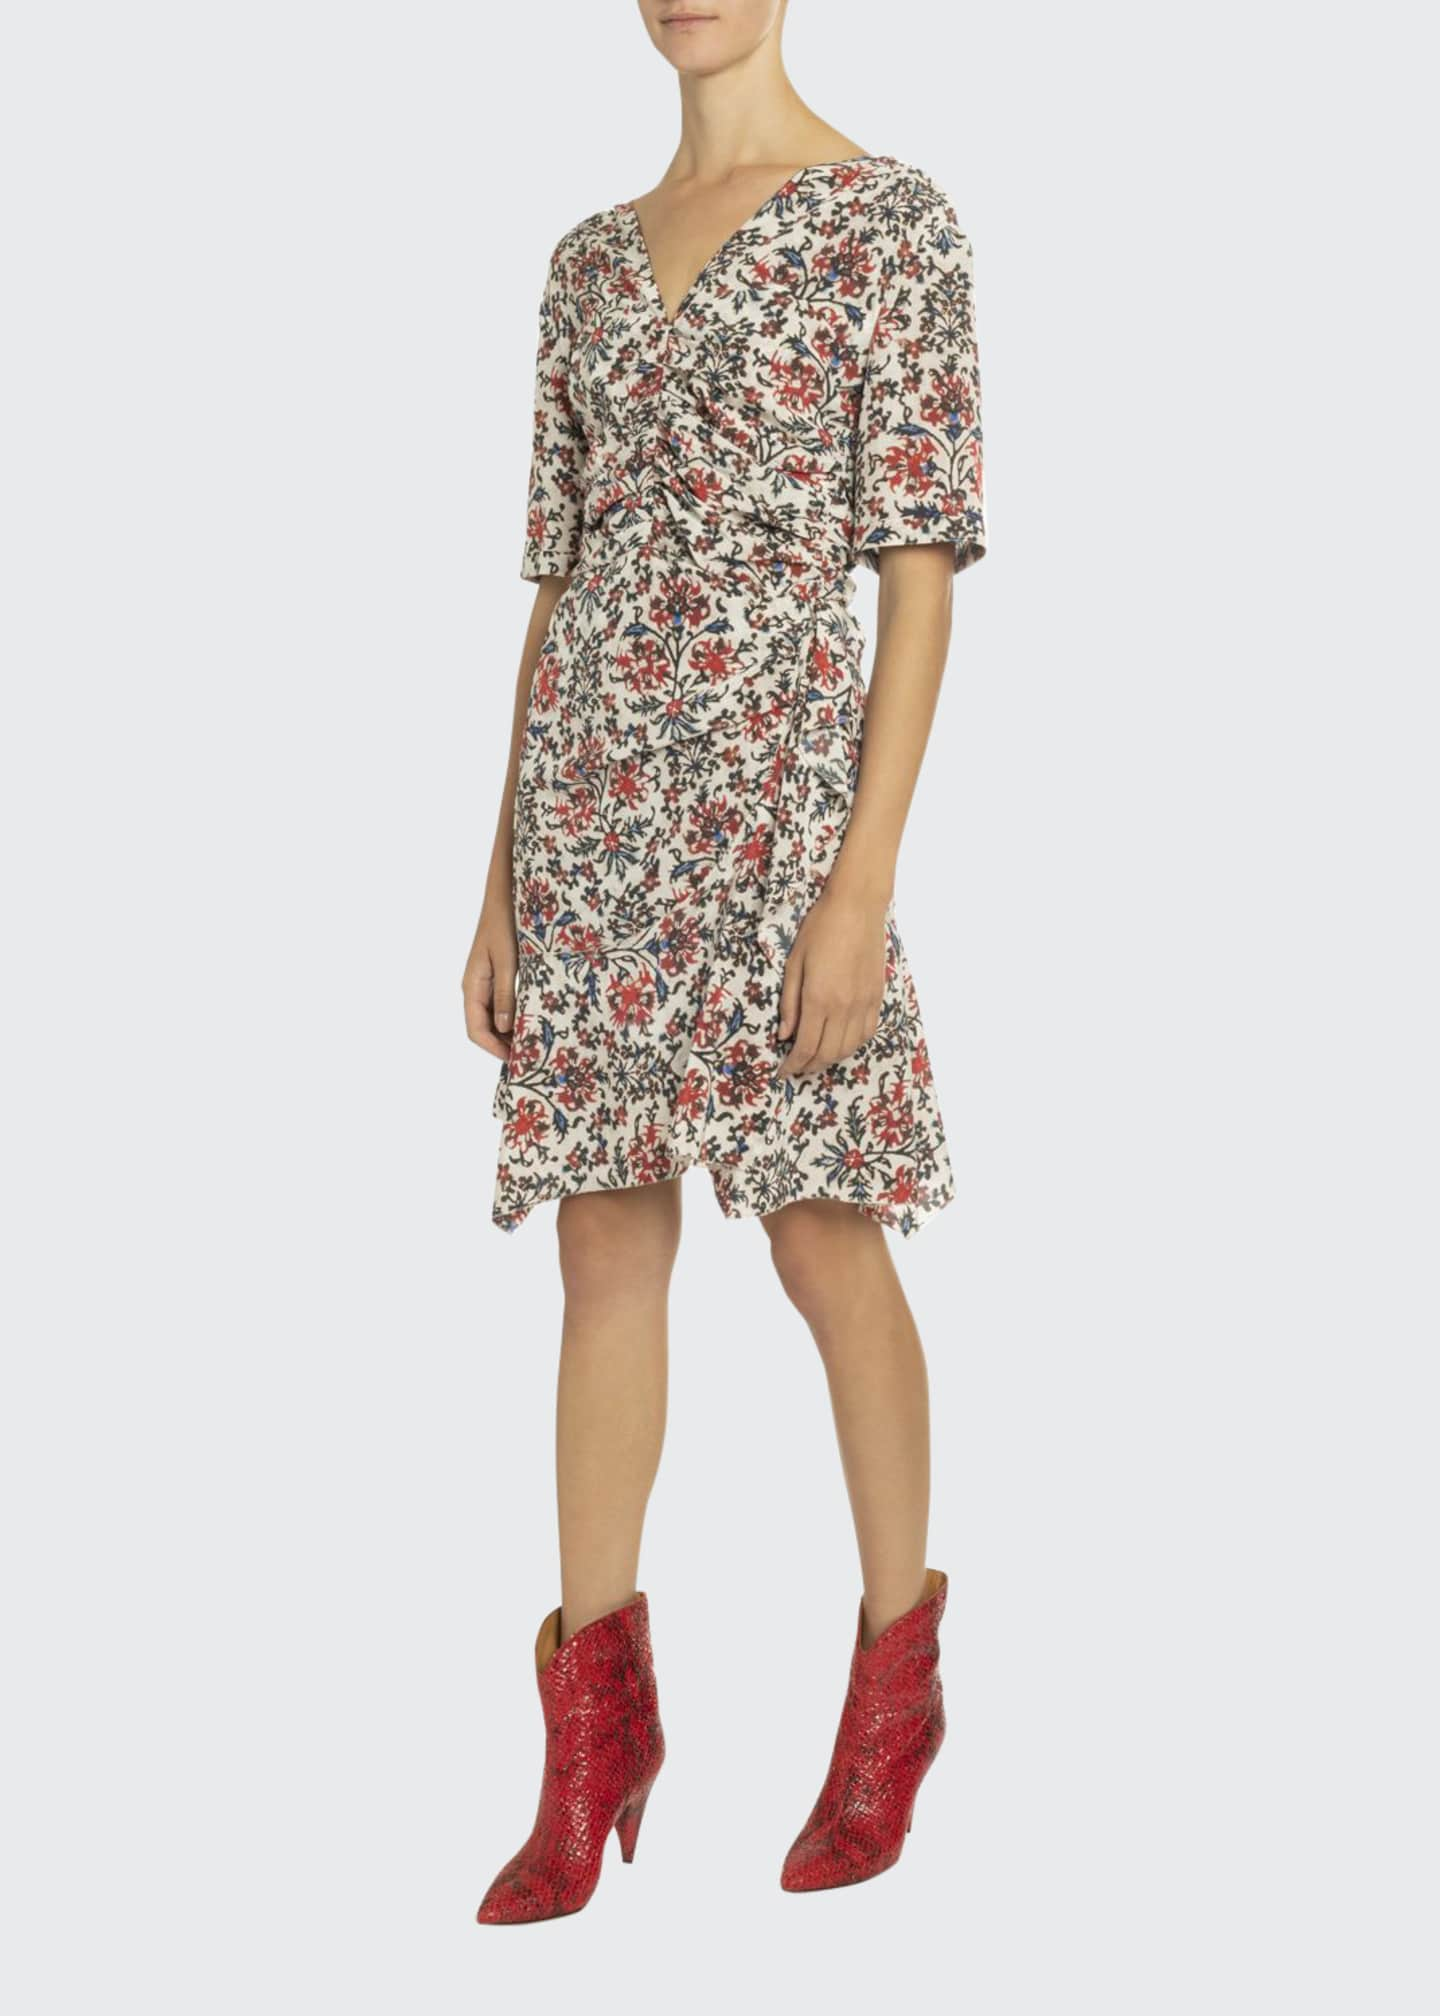 Isabel Marant Elbow-Sleeve Ruched Floral Print Dress